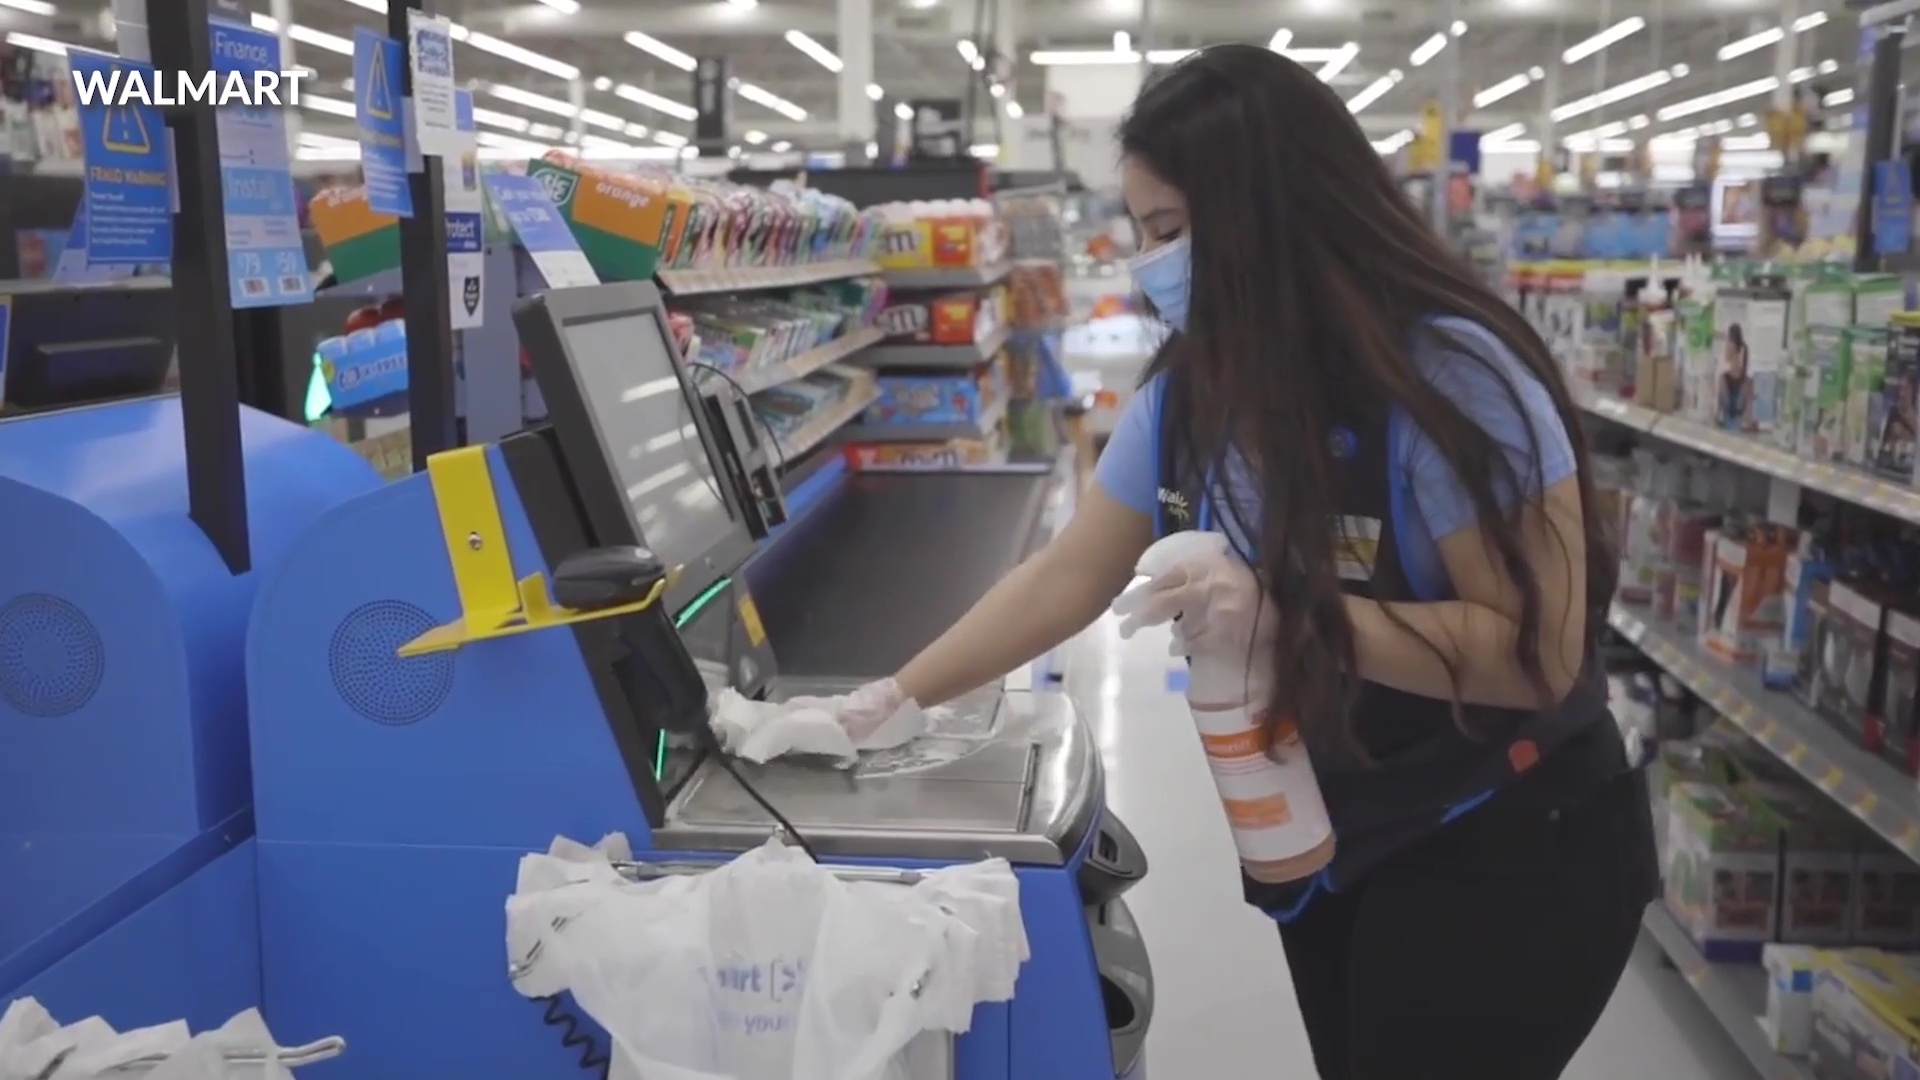 Walmart Replaces Cashiers With Self Checkout Counters In Test At Arkansas Store Fox 4 Kansas City Wdaf Tv News Weather Sports